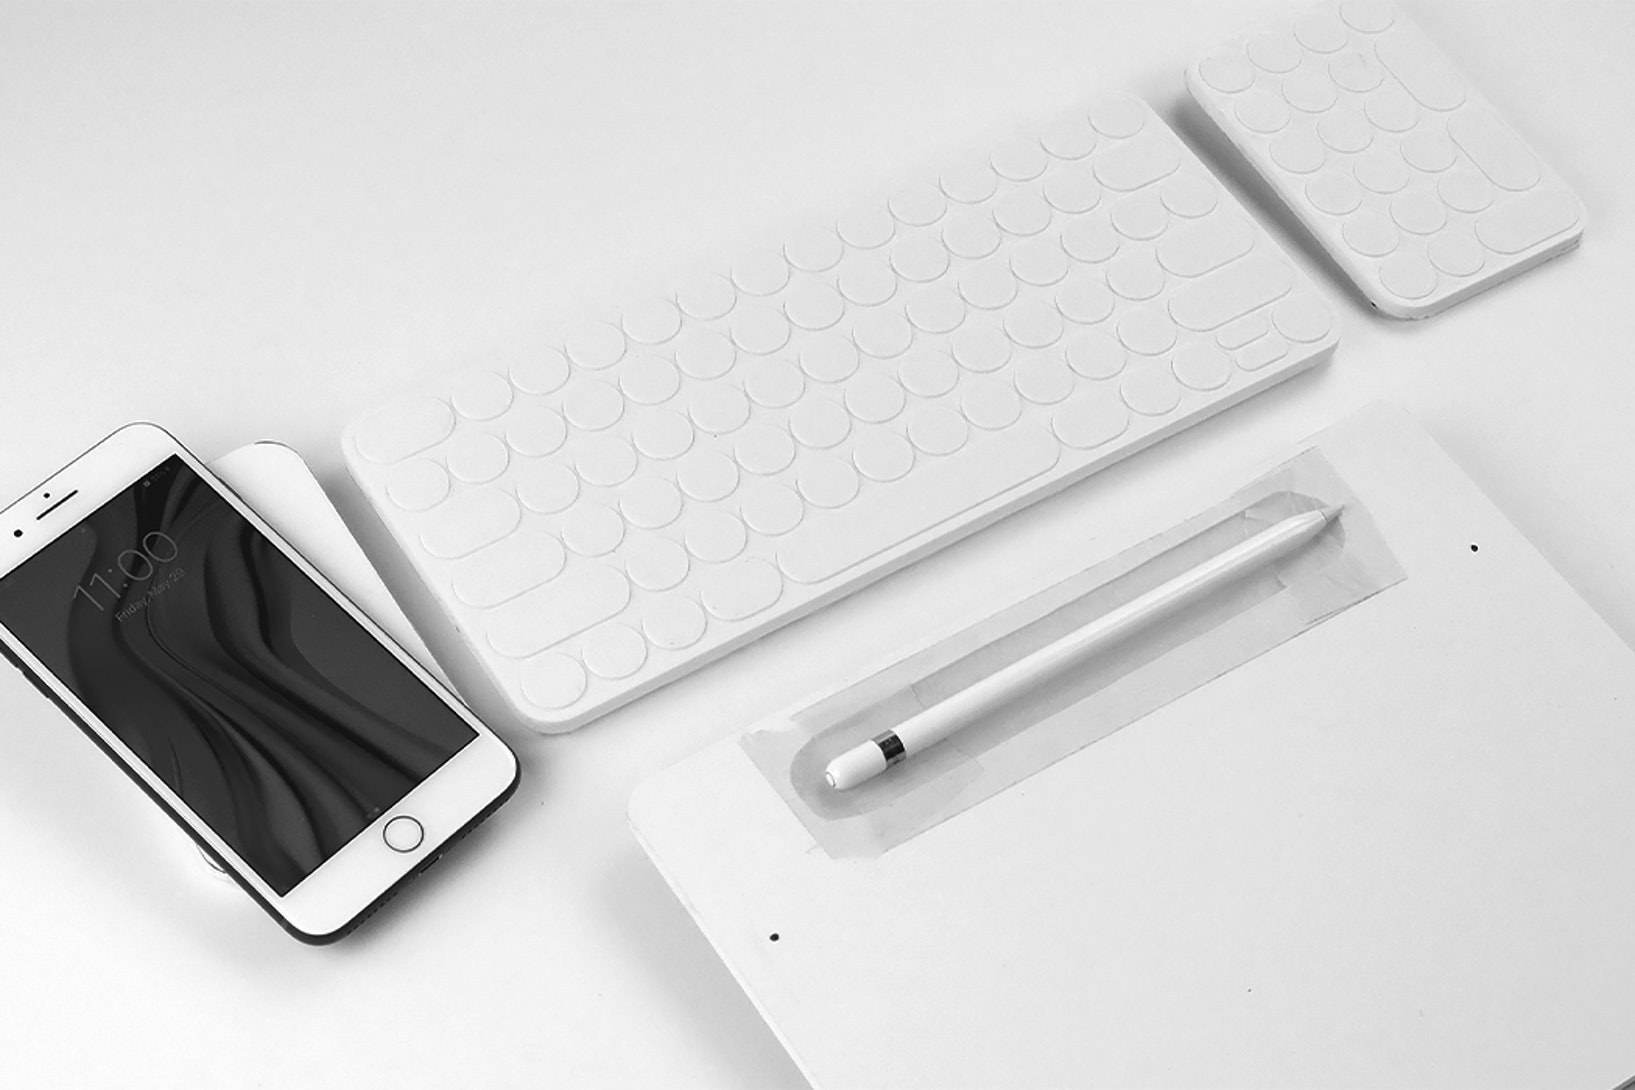 Evan Stuart's modular keyboard lets you charge your smartphone, Apple Watch, and more.